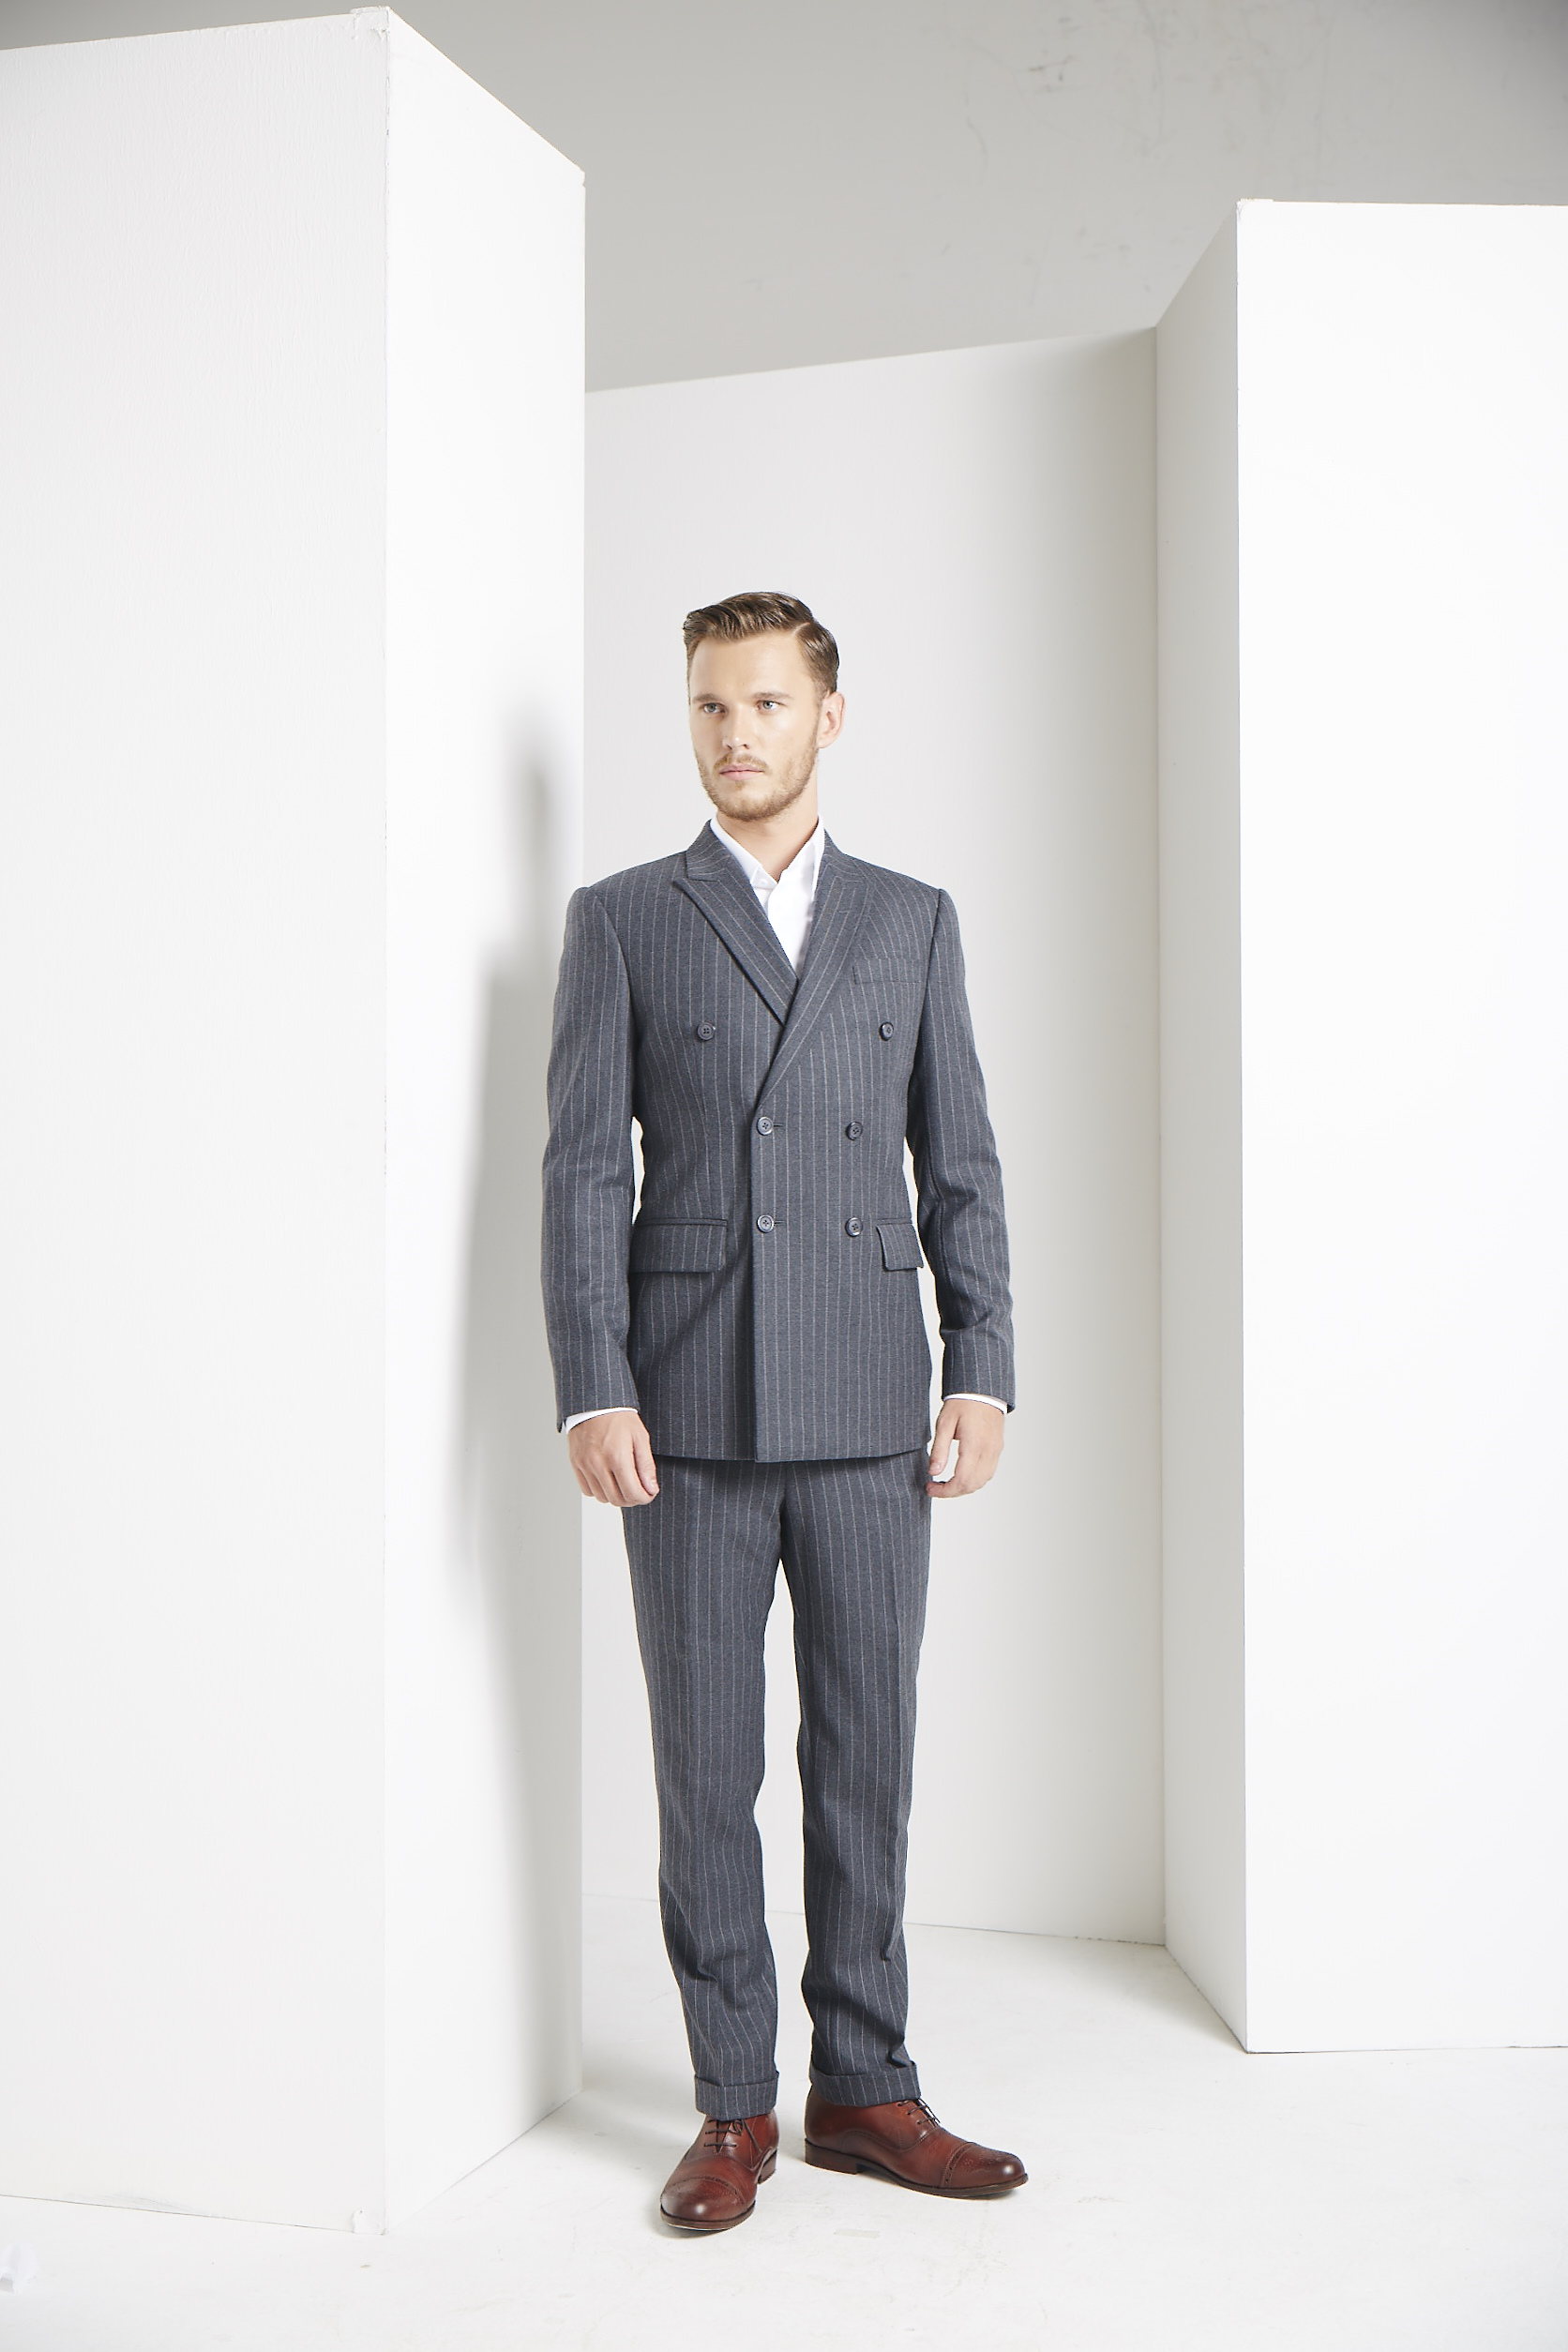 3 Winning Suit Styles for Fall 2016 | iTailor Blog